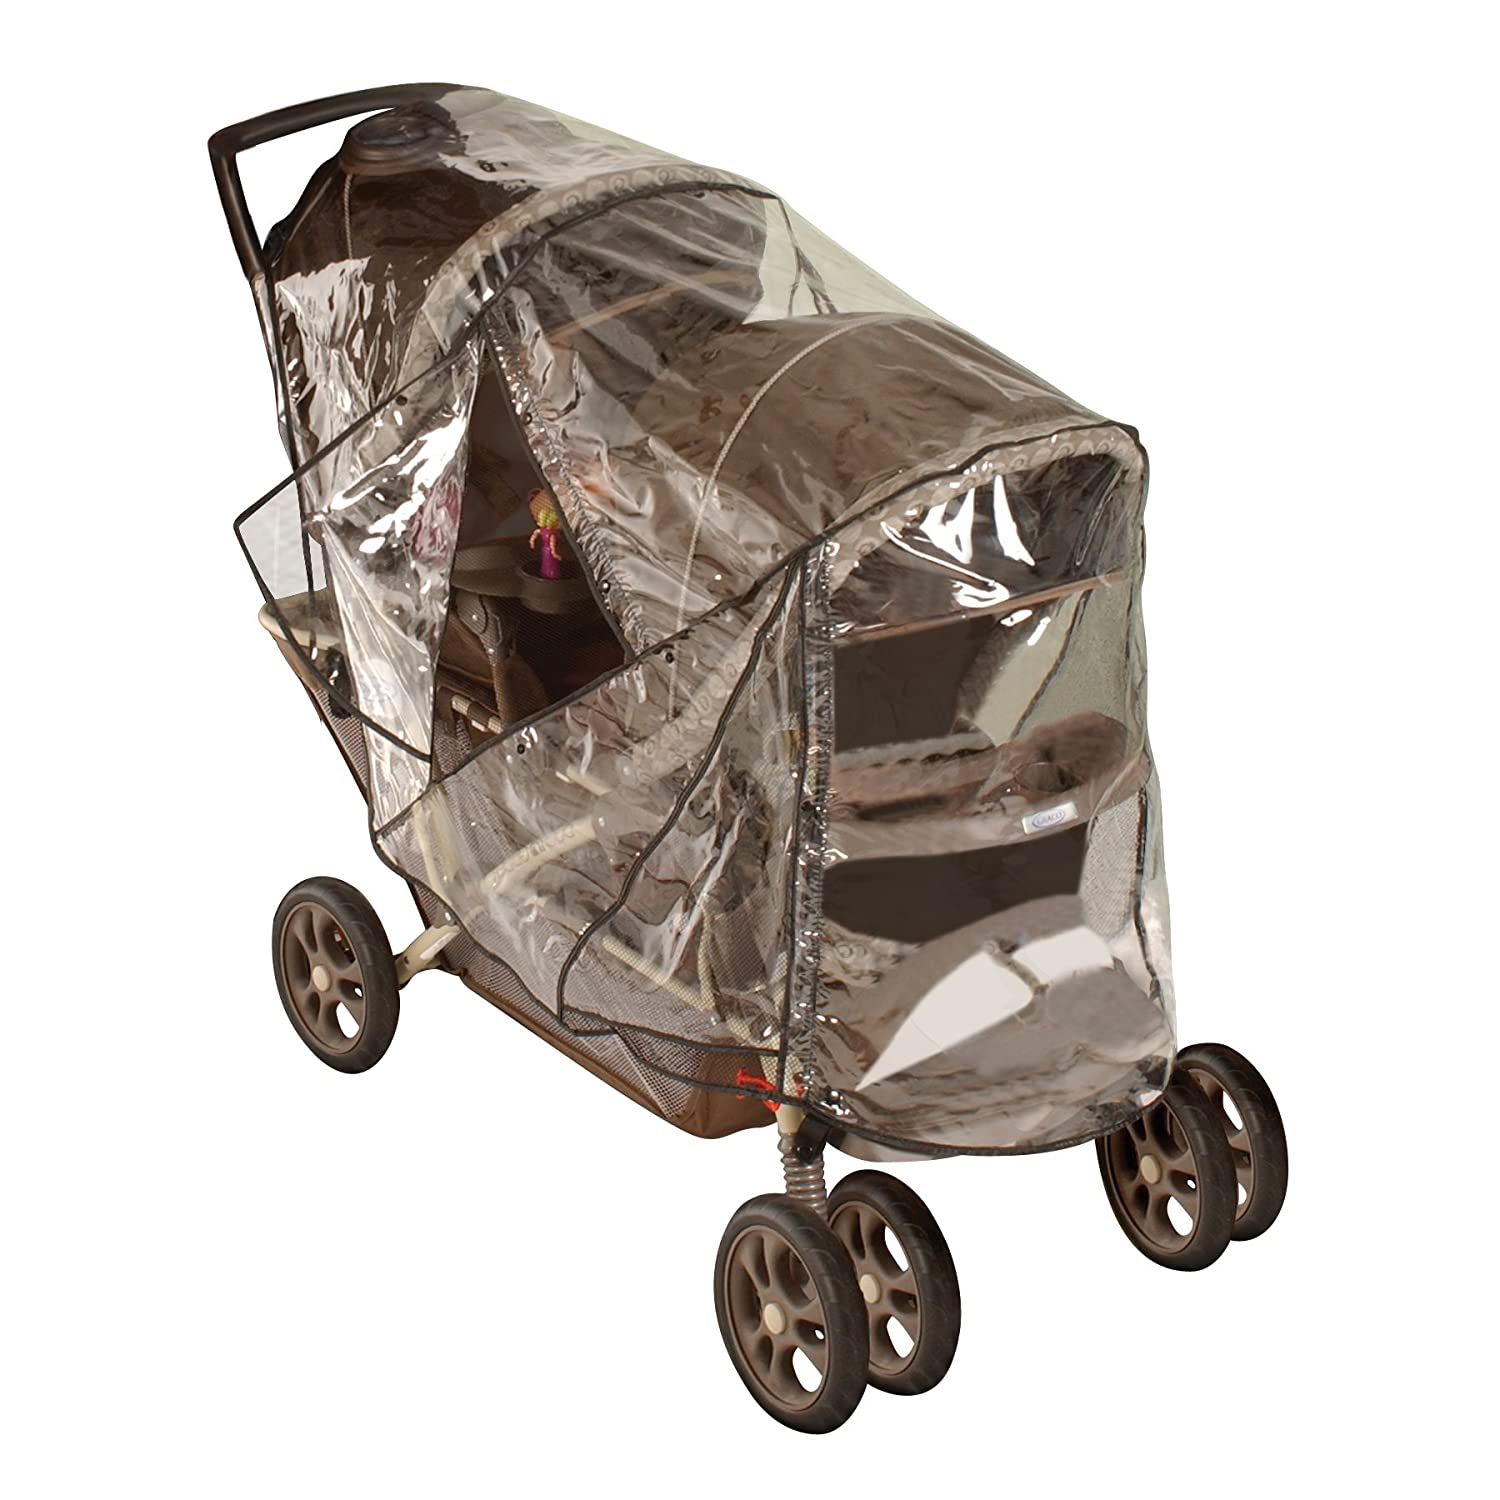 Jeep Deluxe Tandem Stroller Weather Shield HIS Juveniles 90116